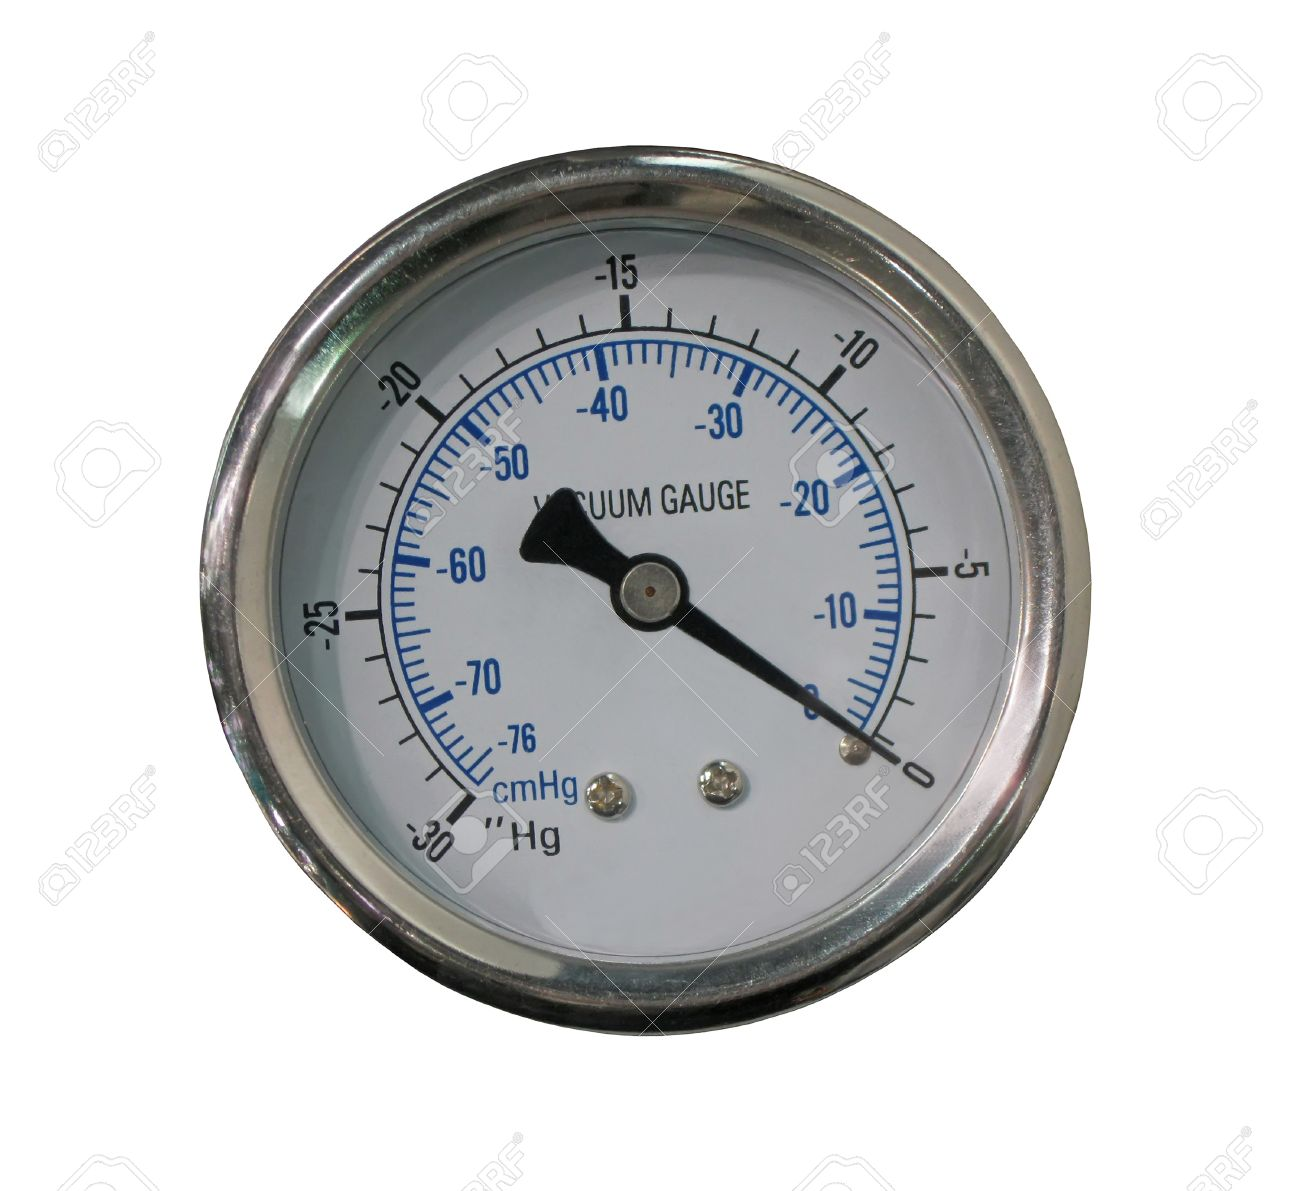 One Measurement Equipment Vacuum Gauge Isolated On White Background Test Concept Stock